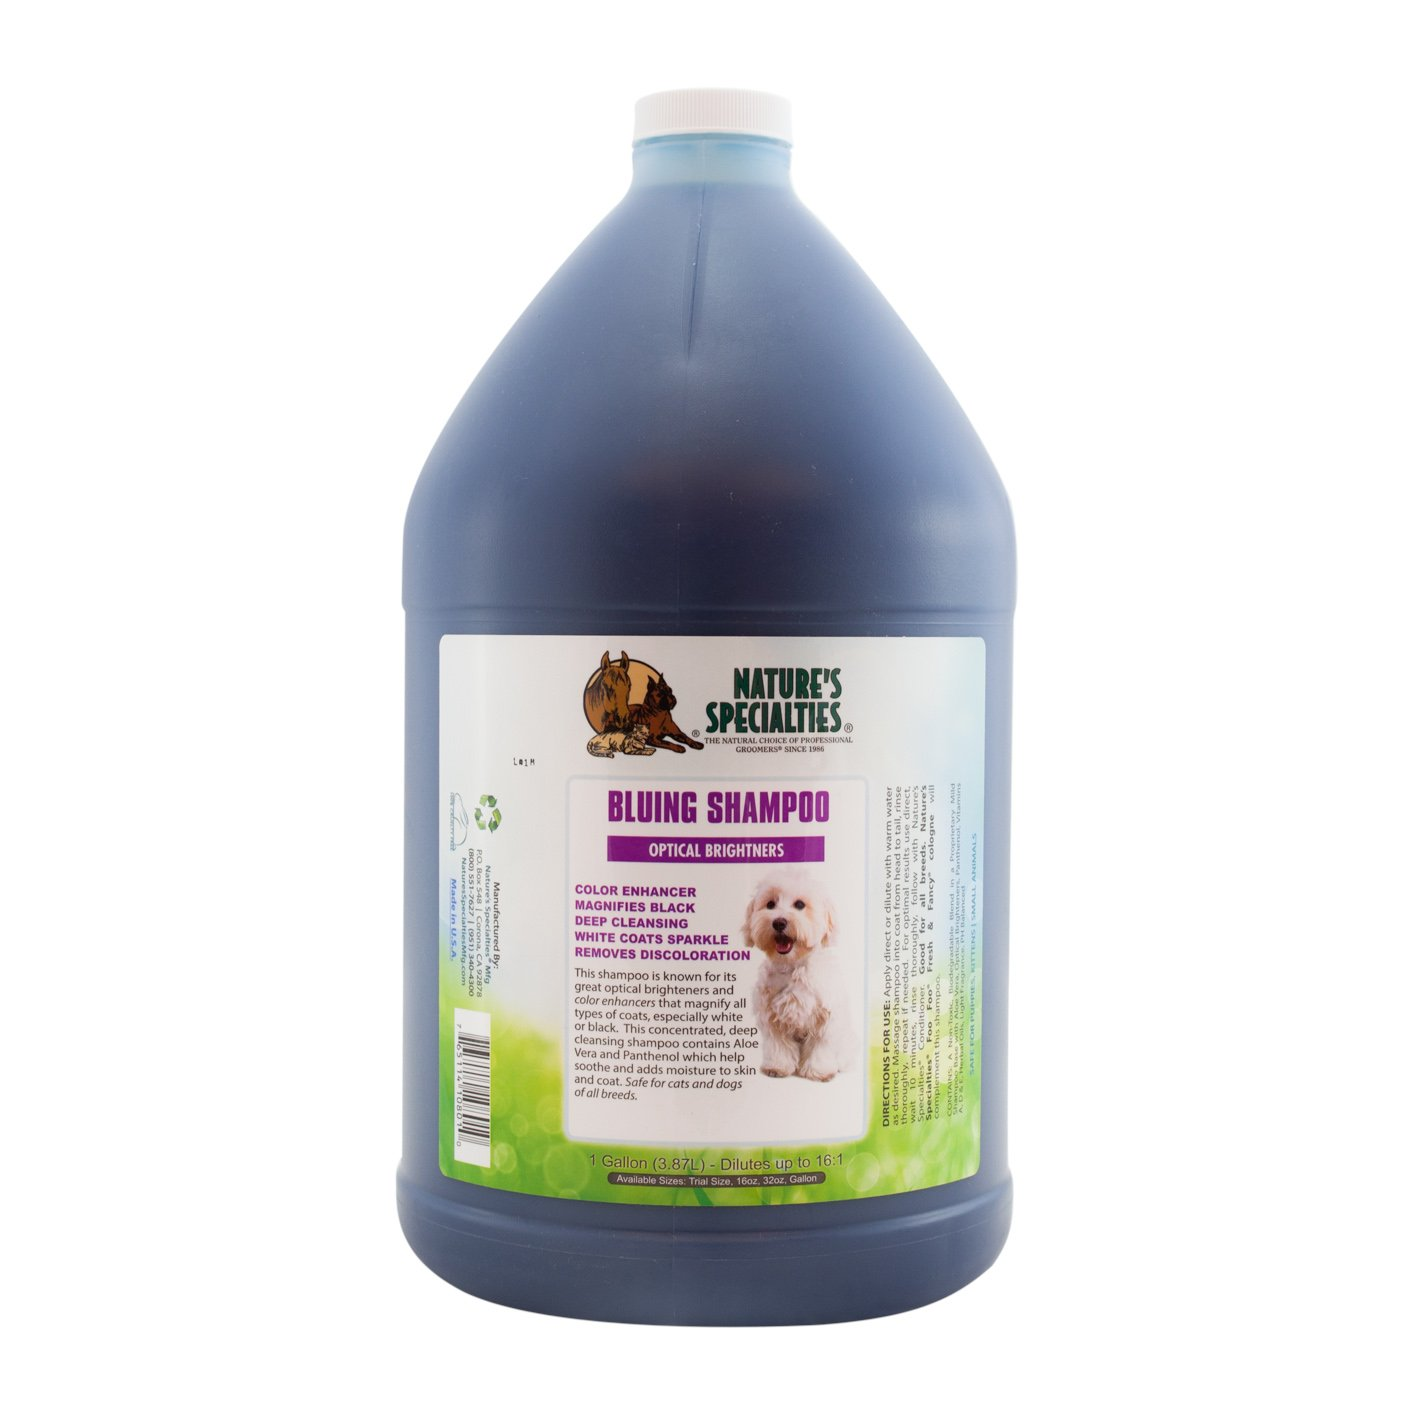 Nature's Specialties Bluing Pet Shampoo with Optical Brighteners by Nature's Specialties Mfg